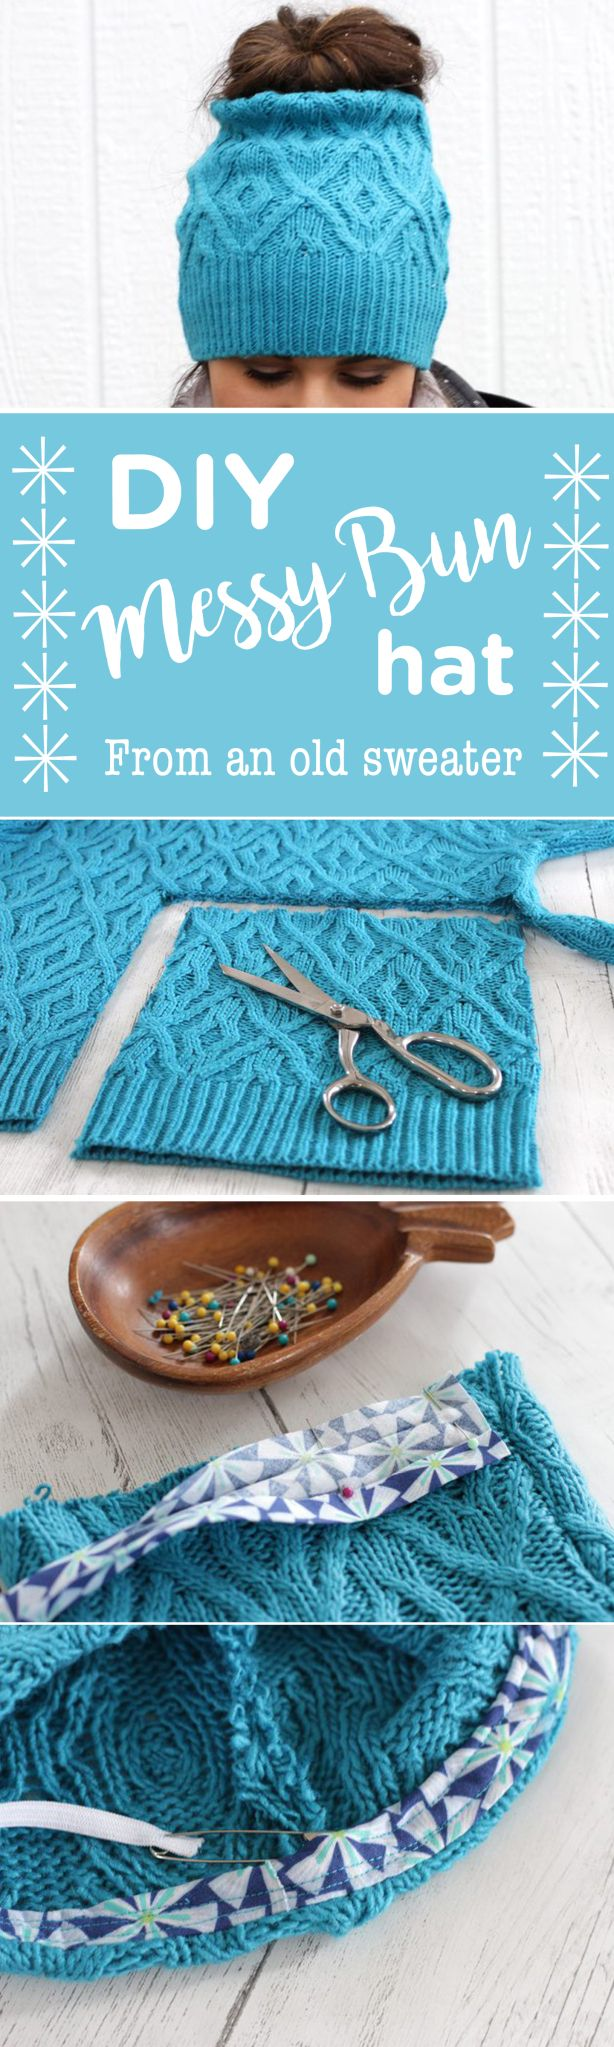 How to look great and avoid hat hair this winter. Make your own messy bun/ponytail hat from an old sweater.